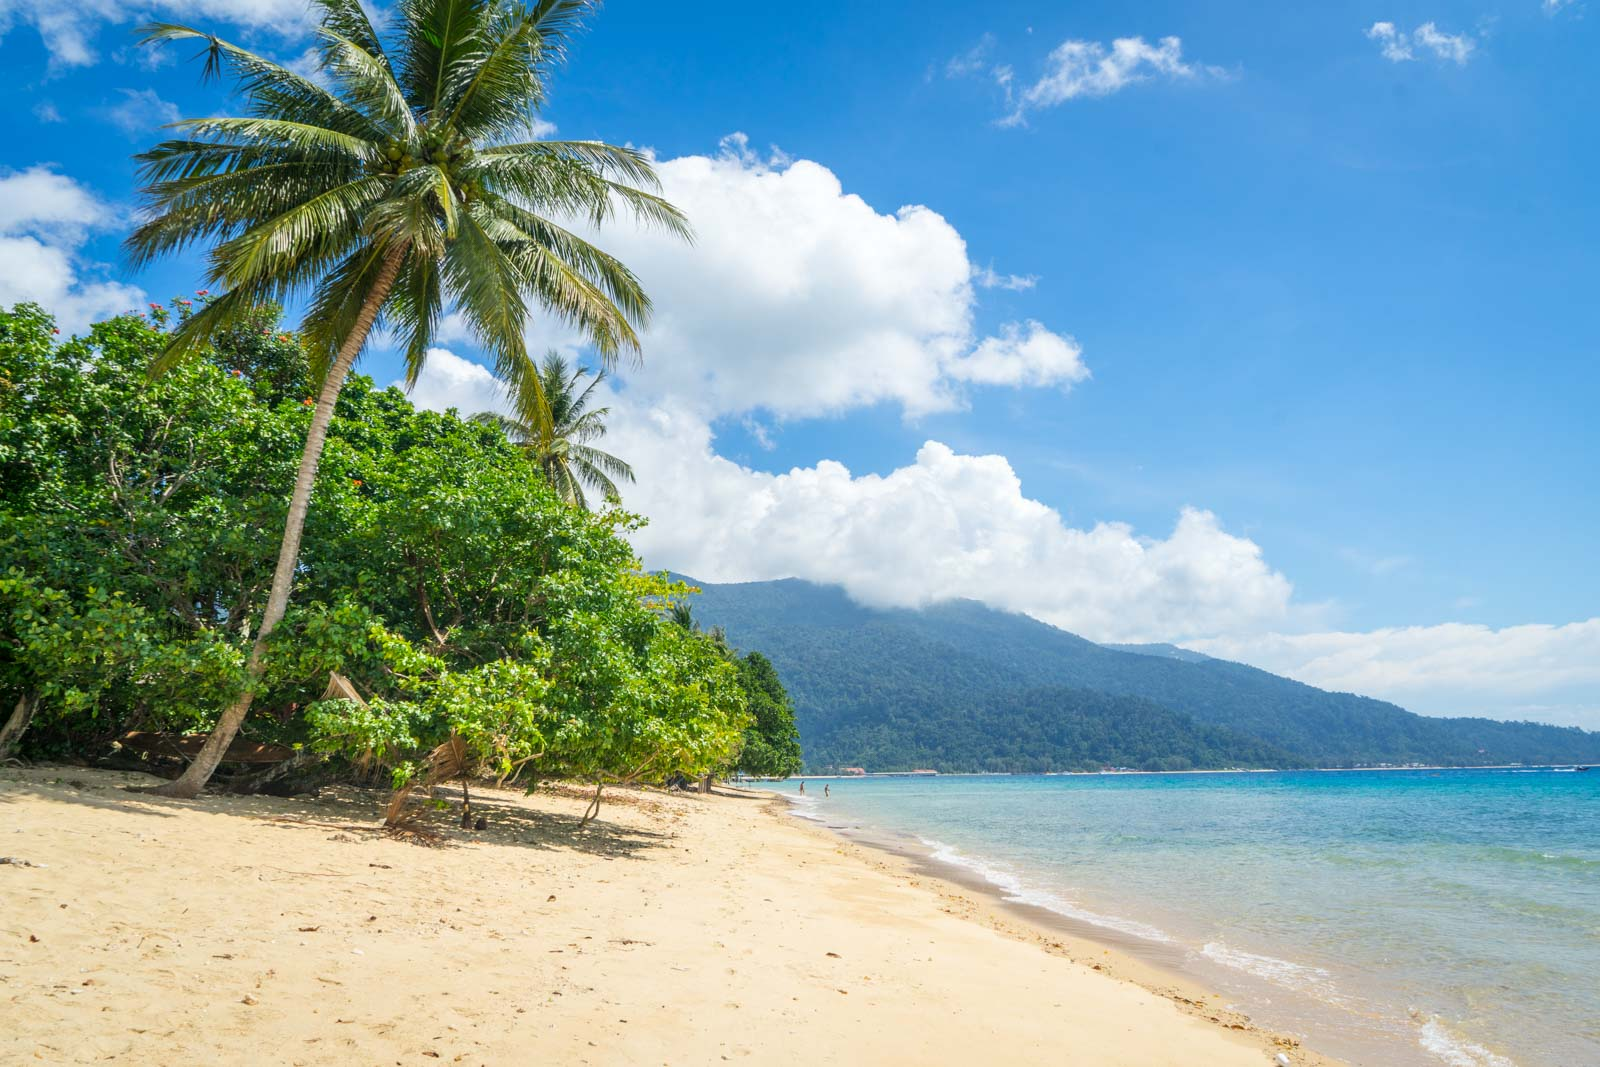 Discussion on this topic: Tioman Island, Malaysia, tioman-island-malaysia/